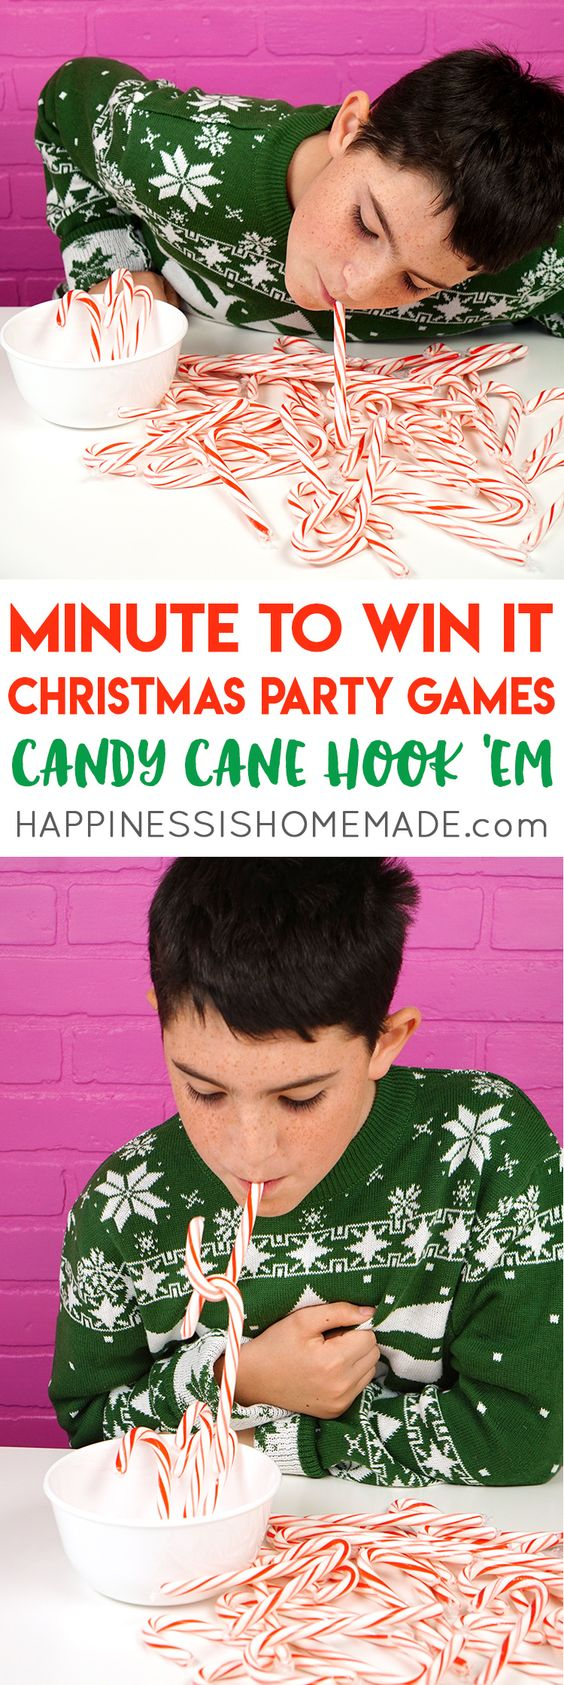 Add some fun to your Christmas party with these simple festive games that the whole family is going to love!